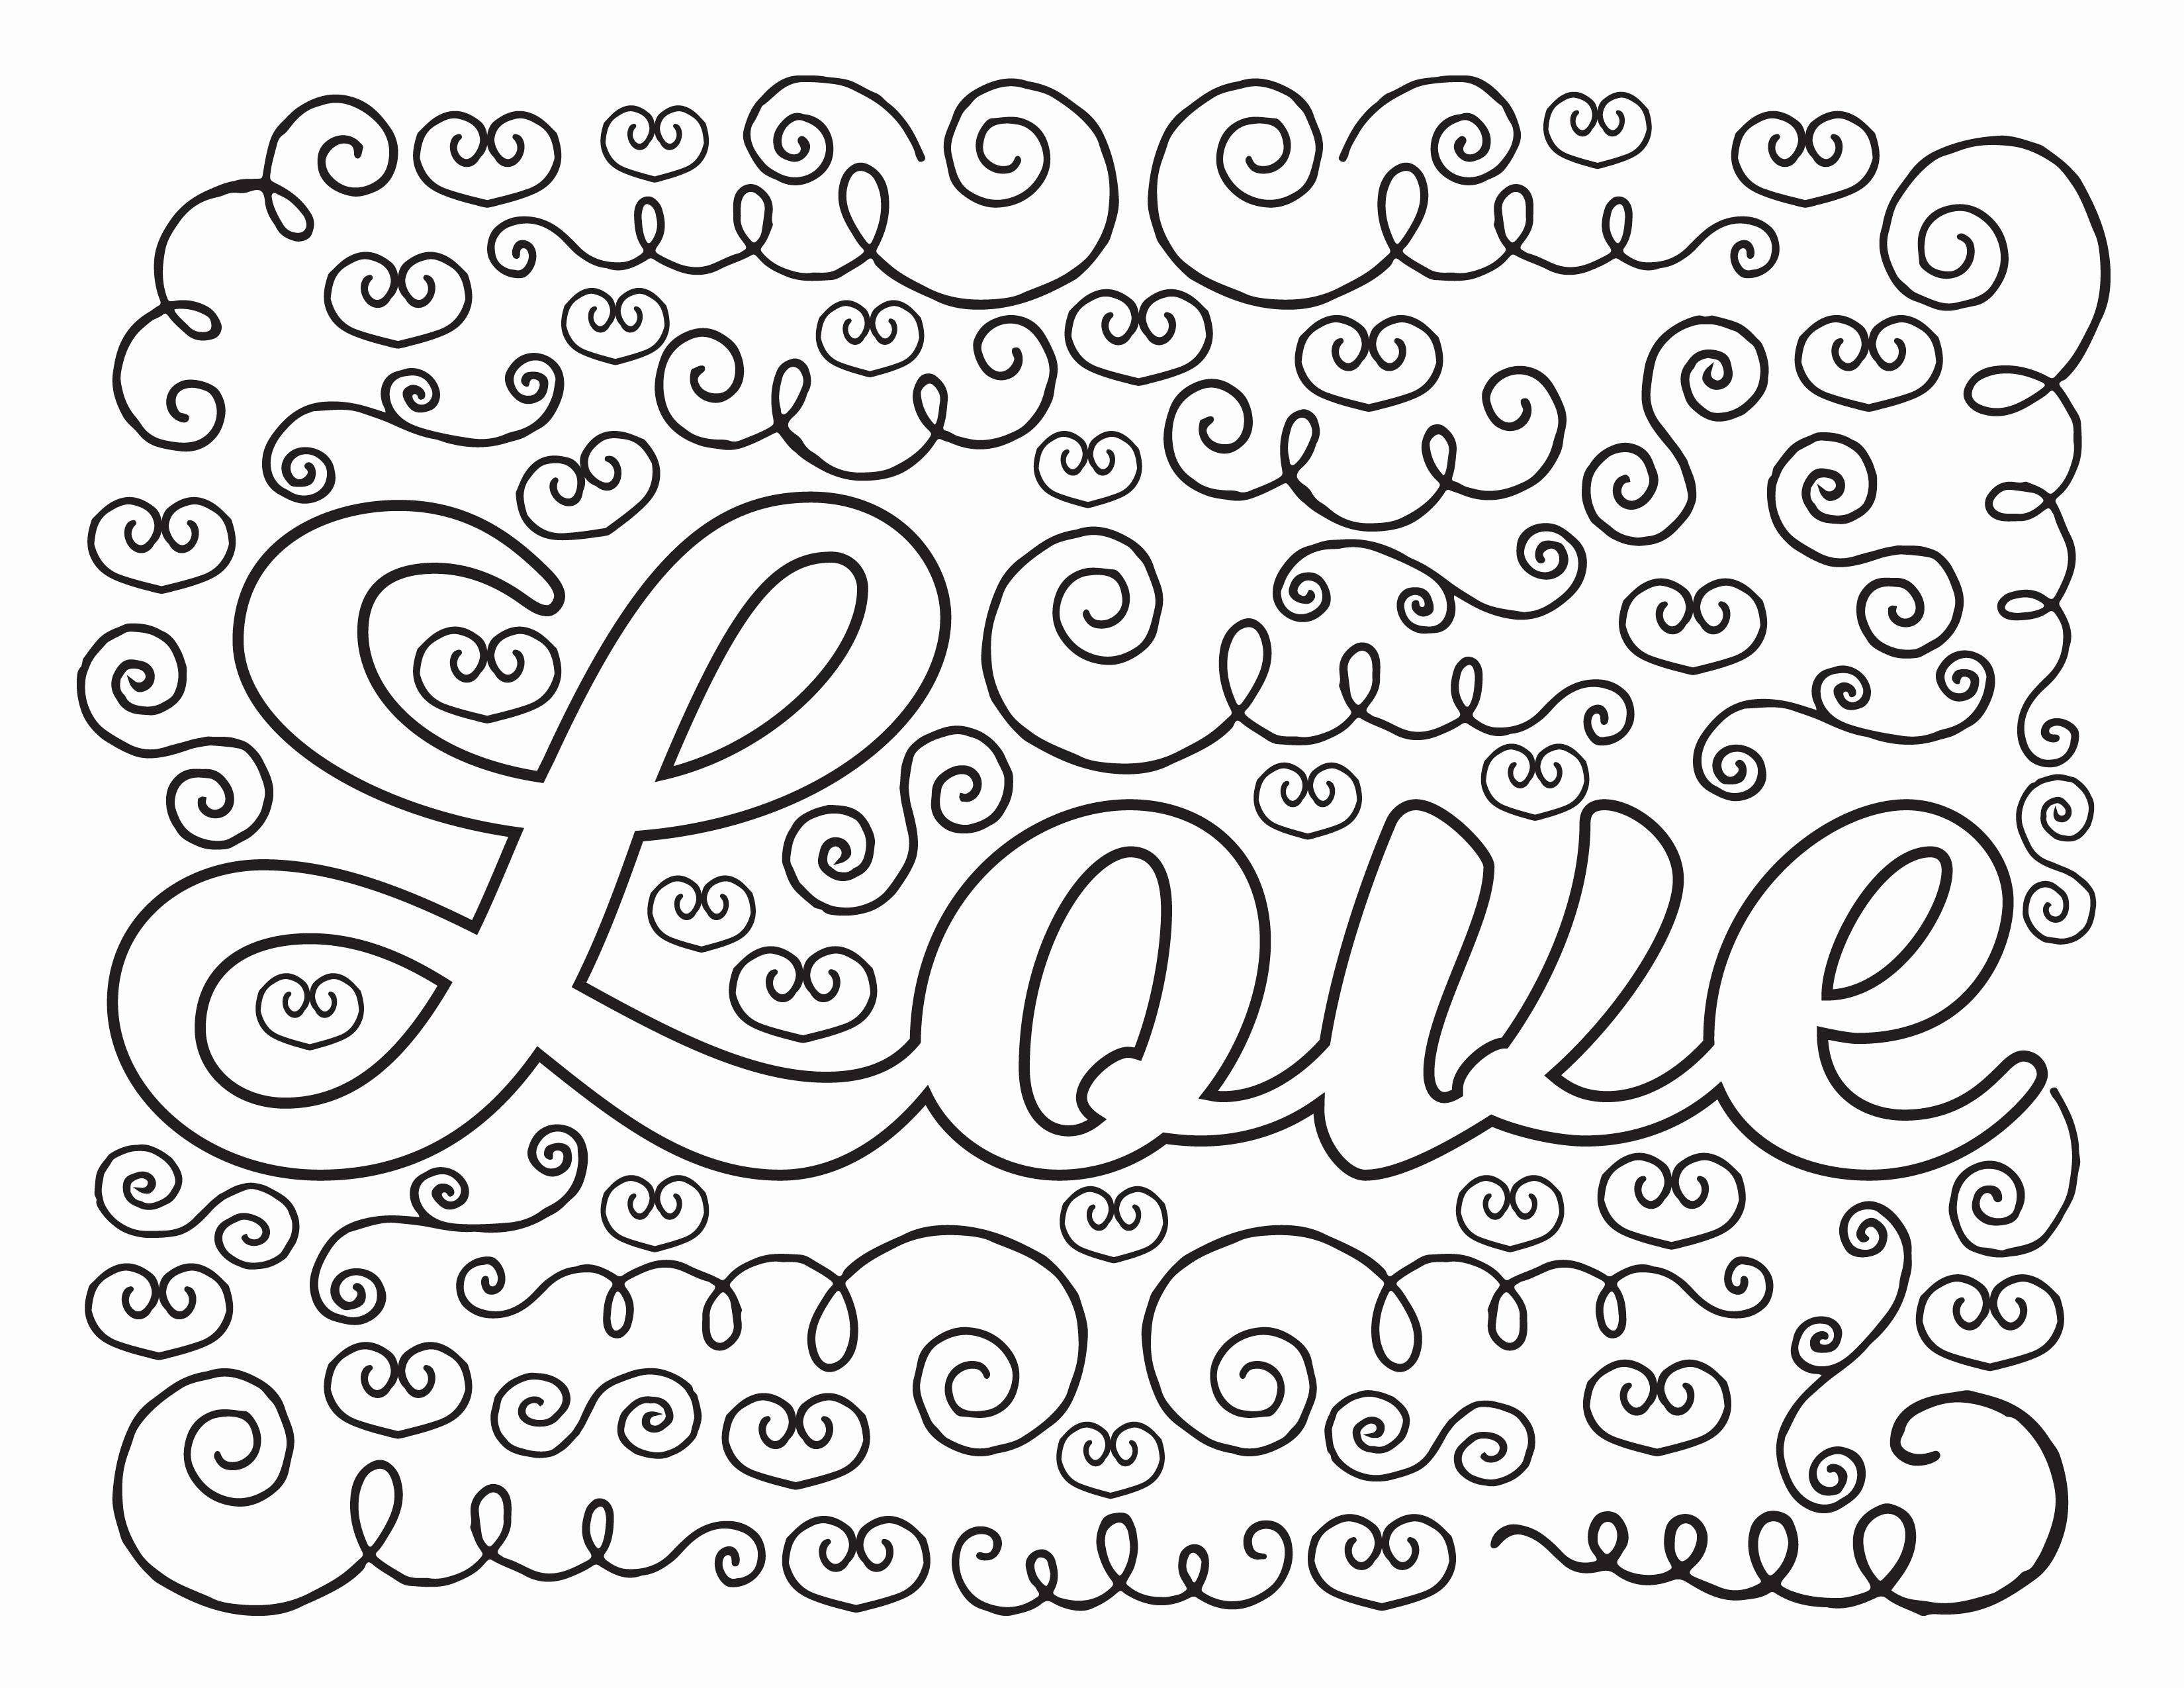 coloring pages to print for girls Download-Cool Coloring Pages for Teens New Coloring Pages for Girls Lovely Printable Cds 0d – Fun Time 14-d